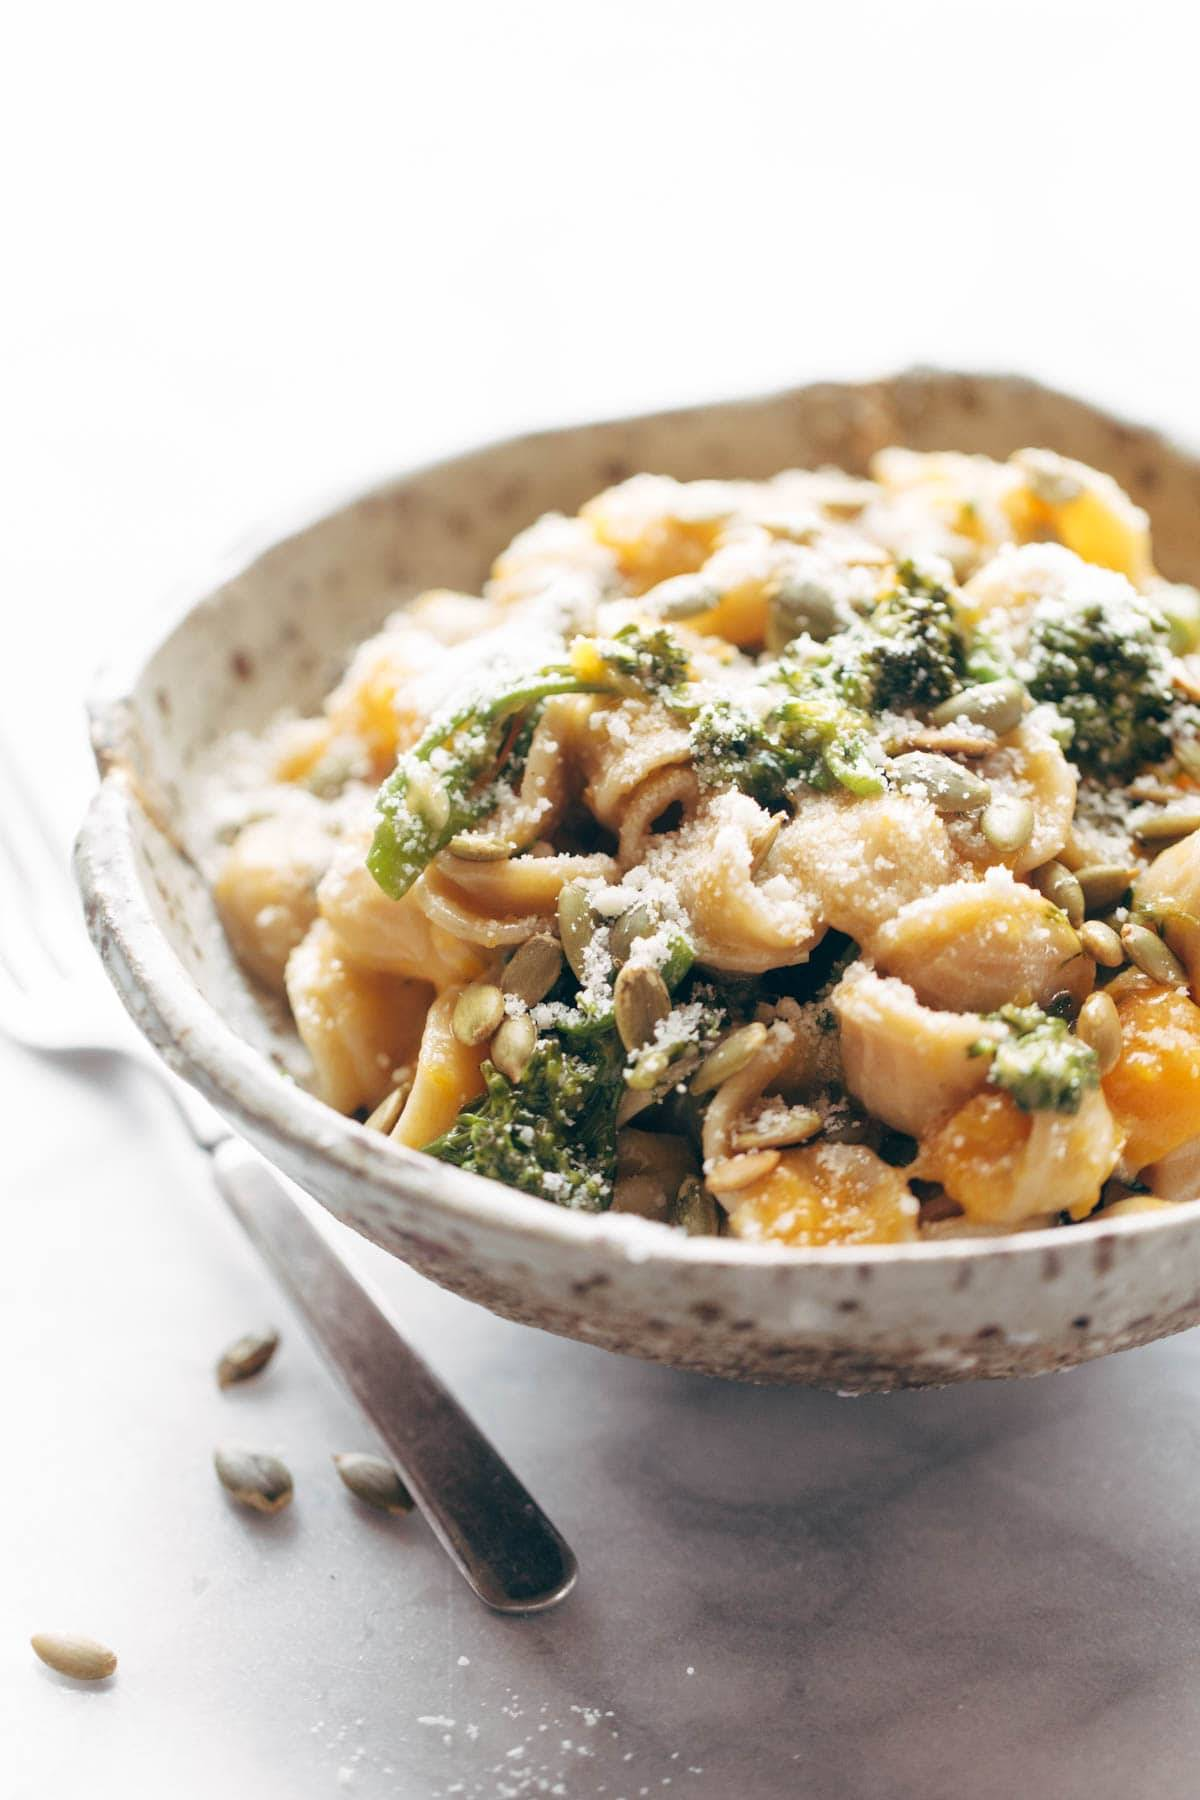 Creamy Parmesan Orecchiette! with roasted butternut squash and broccolini, tossed with a light Parmesan cream / thyme / garlic sauce and sprinkled with pumpkin seeds. Pasta perfection! | pinchofyum.com